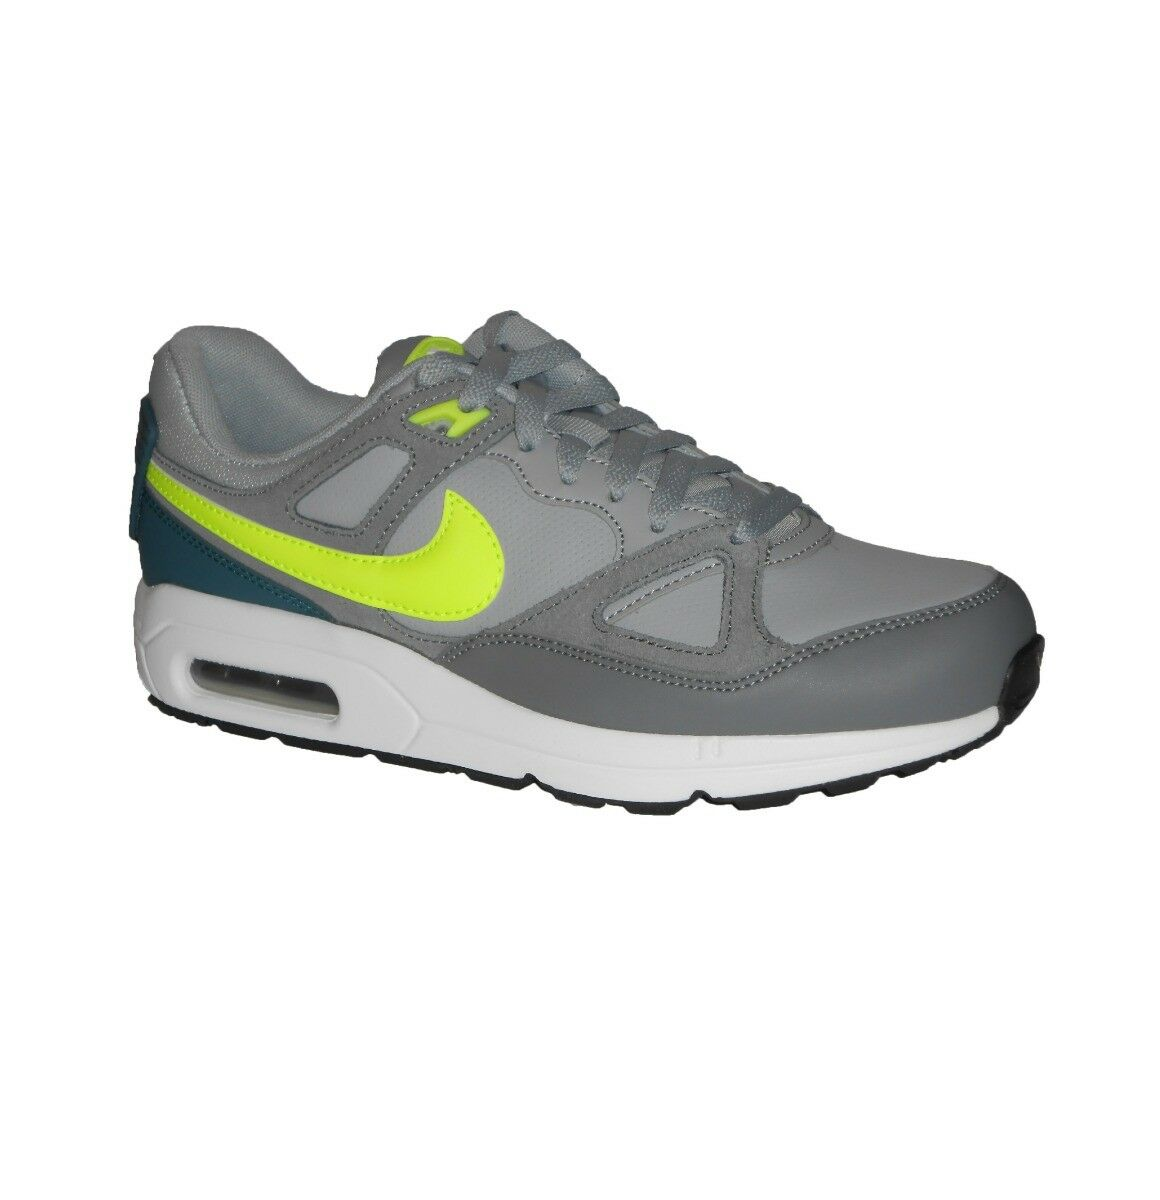 Acquista nike air max span OFF64% sconti